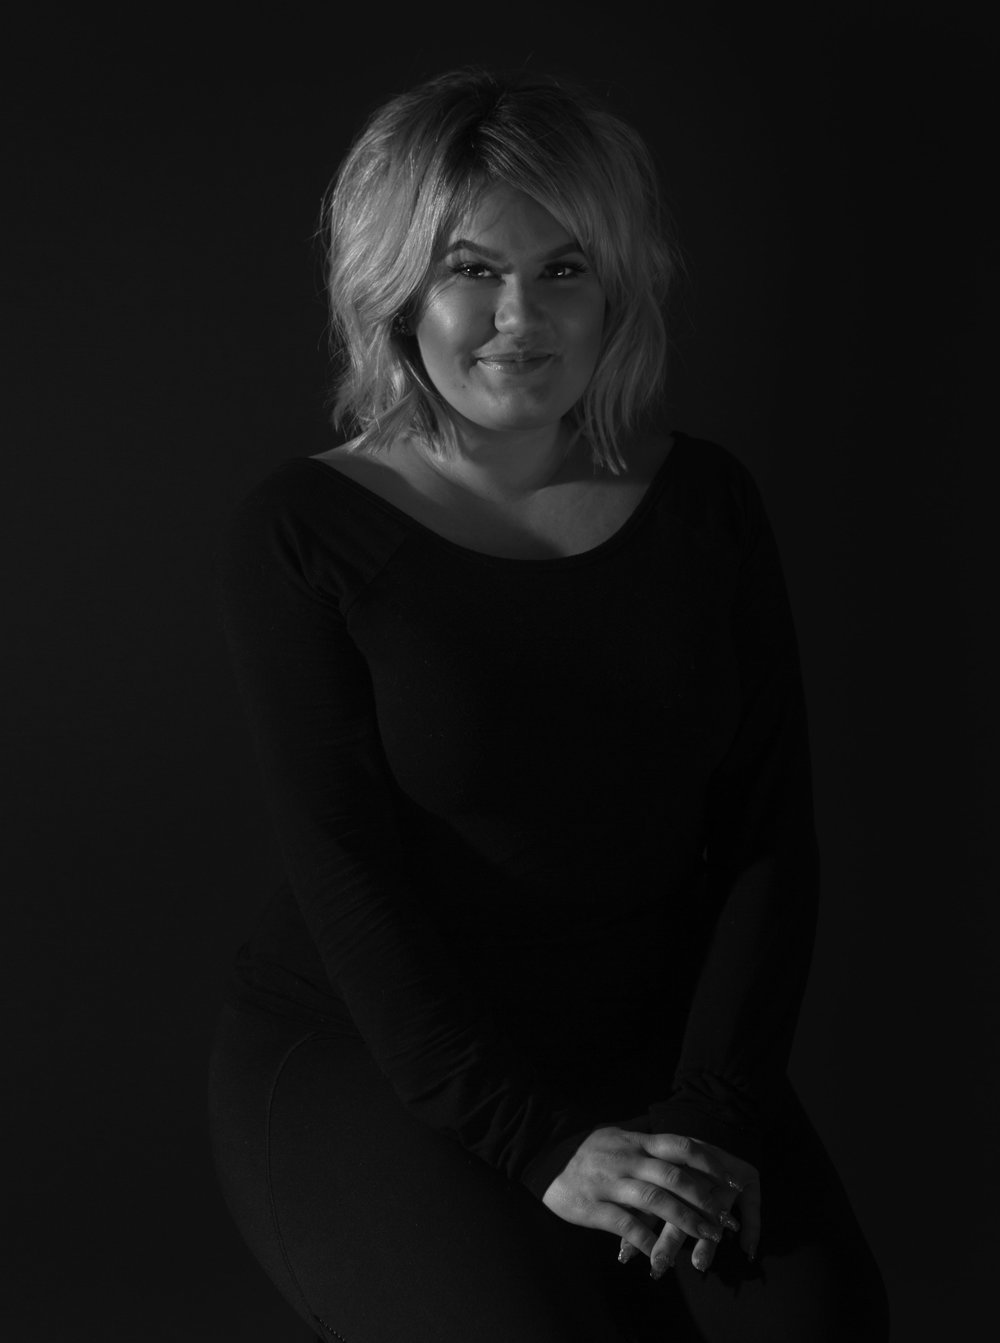 Carolyn - SENIOR STYLISTCarolyn is a high spirited and devoted junior stylist with 2 years experience trained by Zazú's top educators. Her passion is to make people feel beautiful in her chair, Carolyn specializes in hair coloring, women's and men's hair cutting, makeup and bridal.Woman's Haircut $45  Men's Cut $35INSTAGRAM @CAROLYNGASLAWSKA